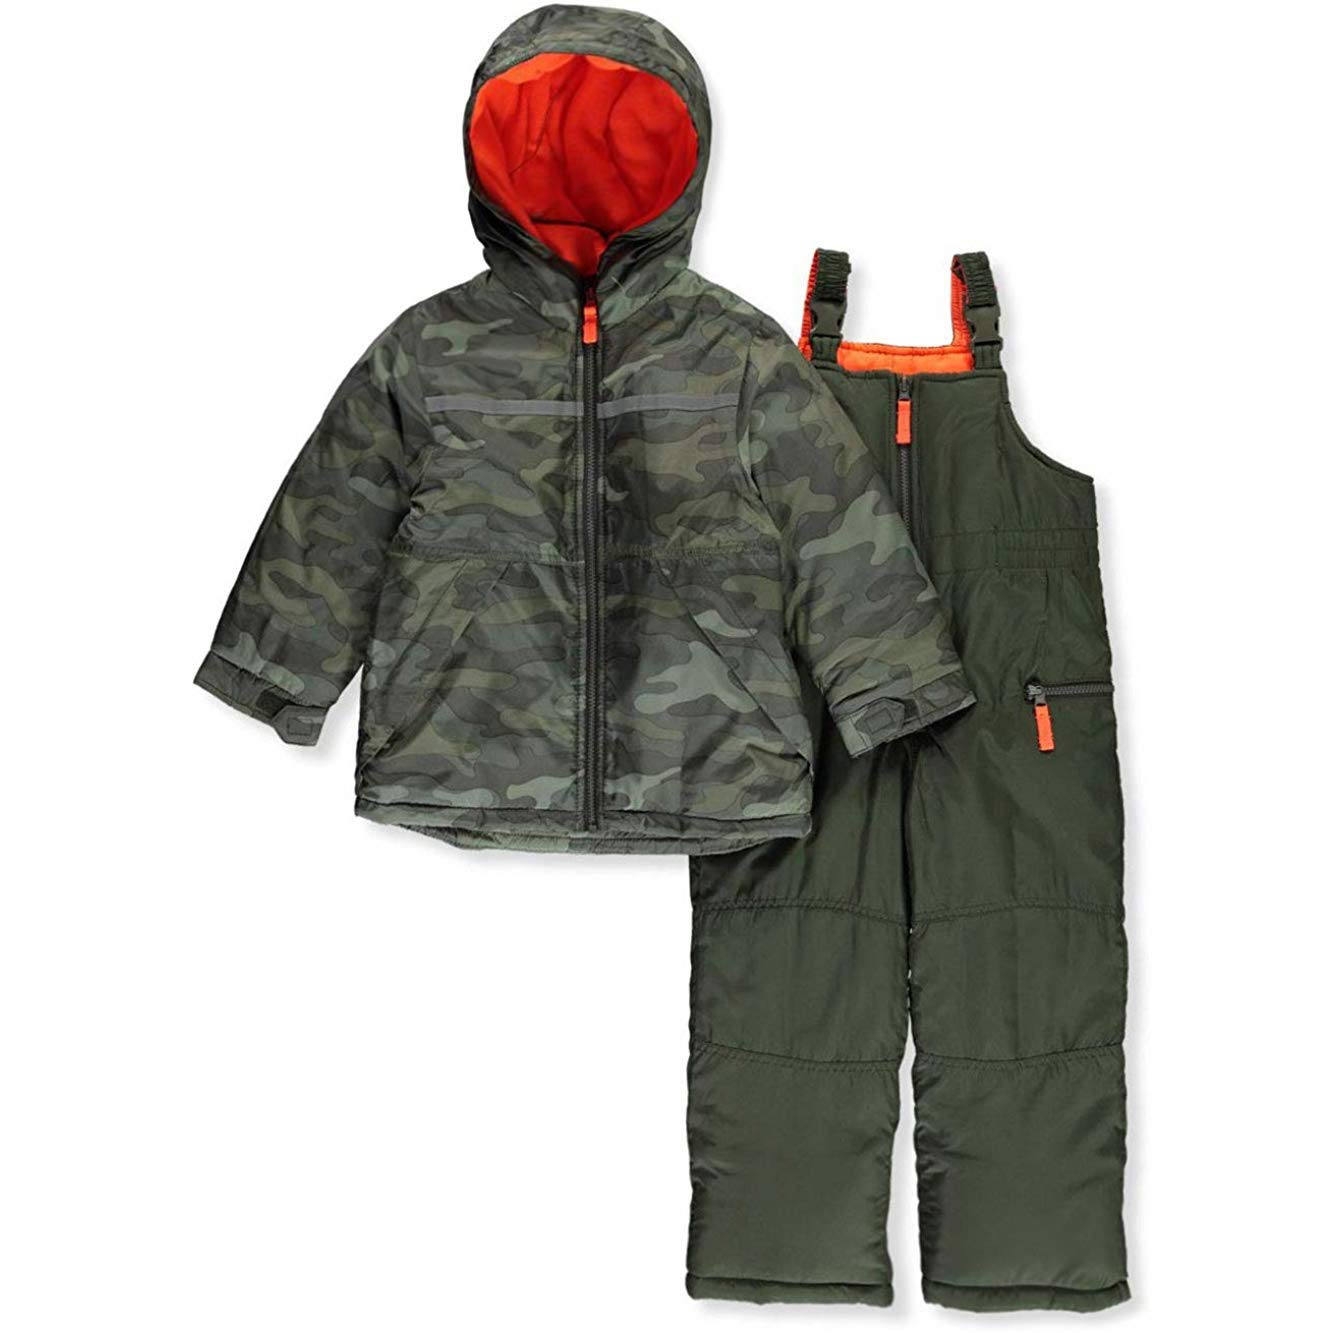 Carter's Baby Boys Heavyweight 2-Piece Skisuit Snowsuit, Olive Camo, 18 Months by Carter's